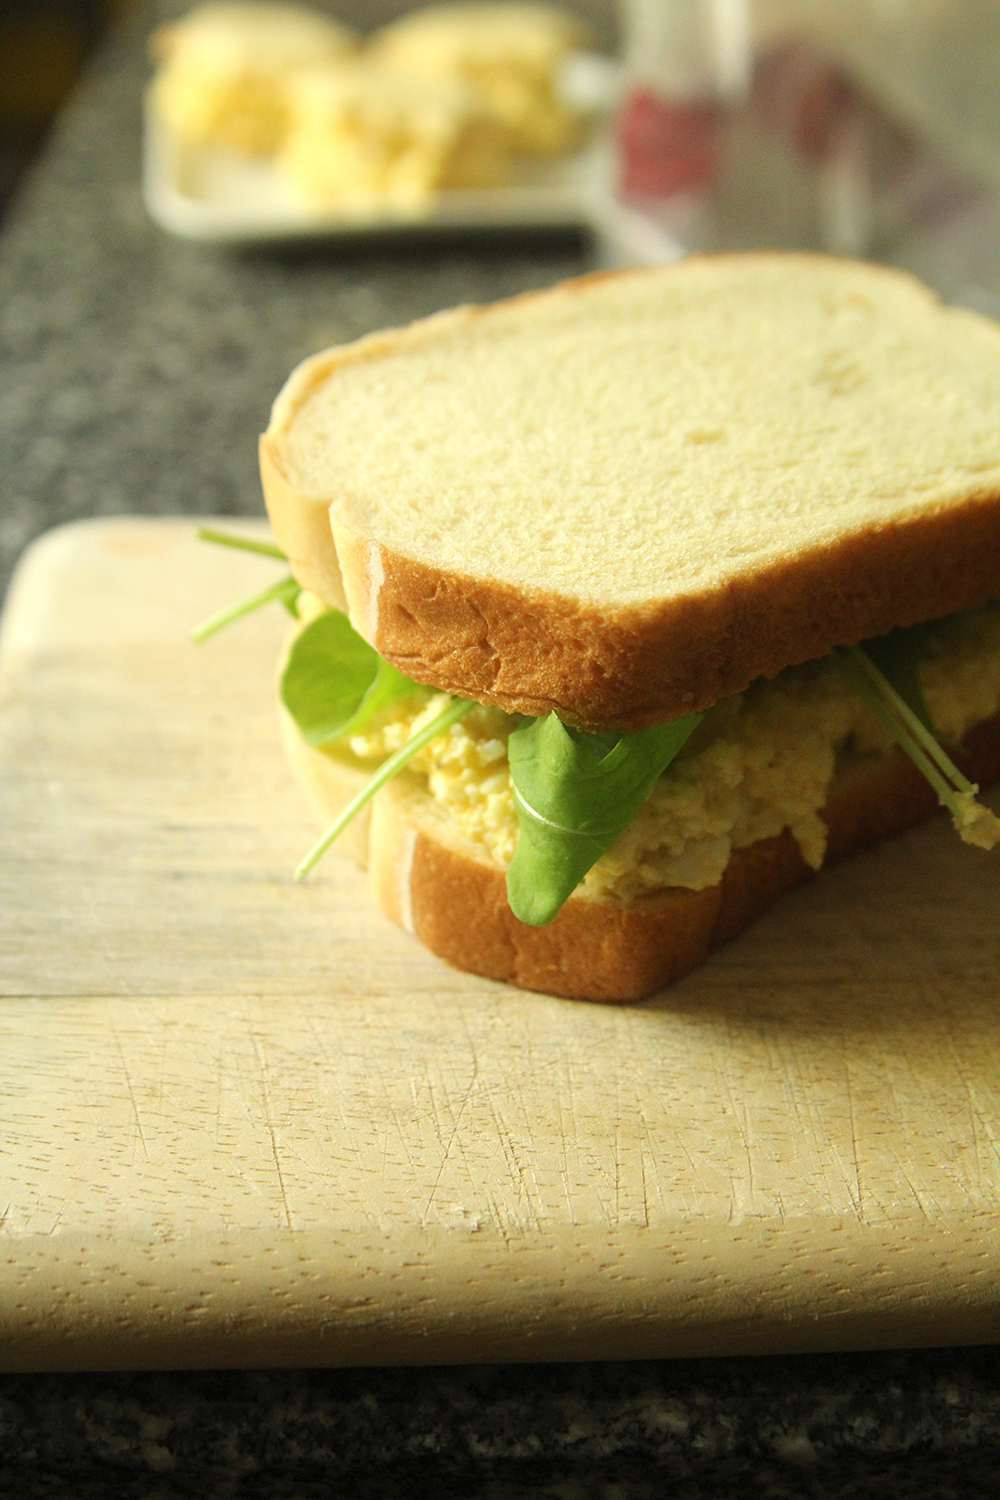 A sandwich made with egg salad is shown on a cutting board. Green baby arugula pokes out in all directions.